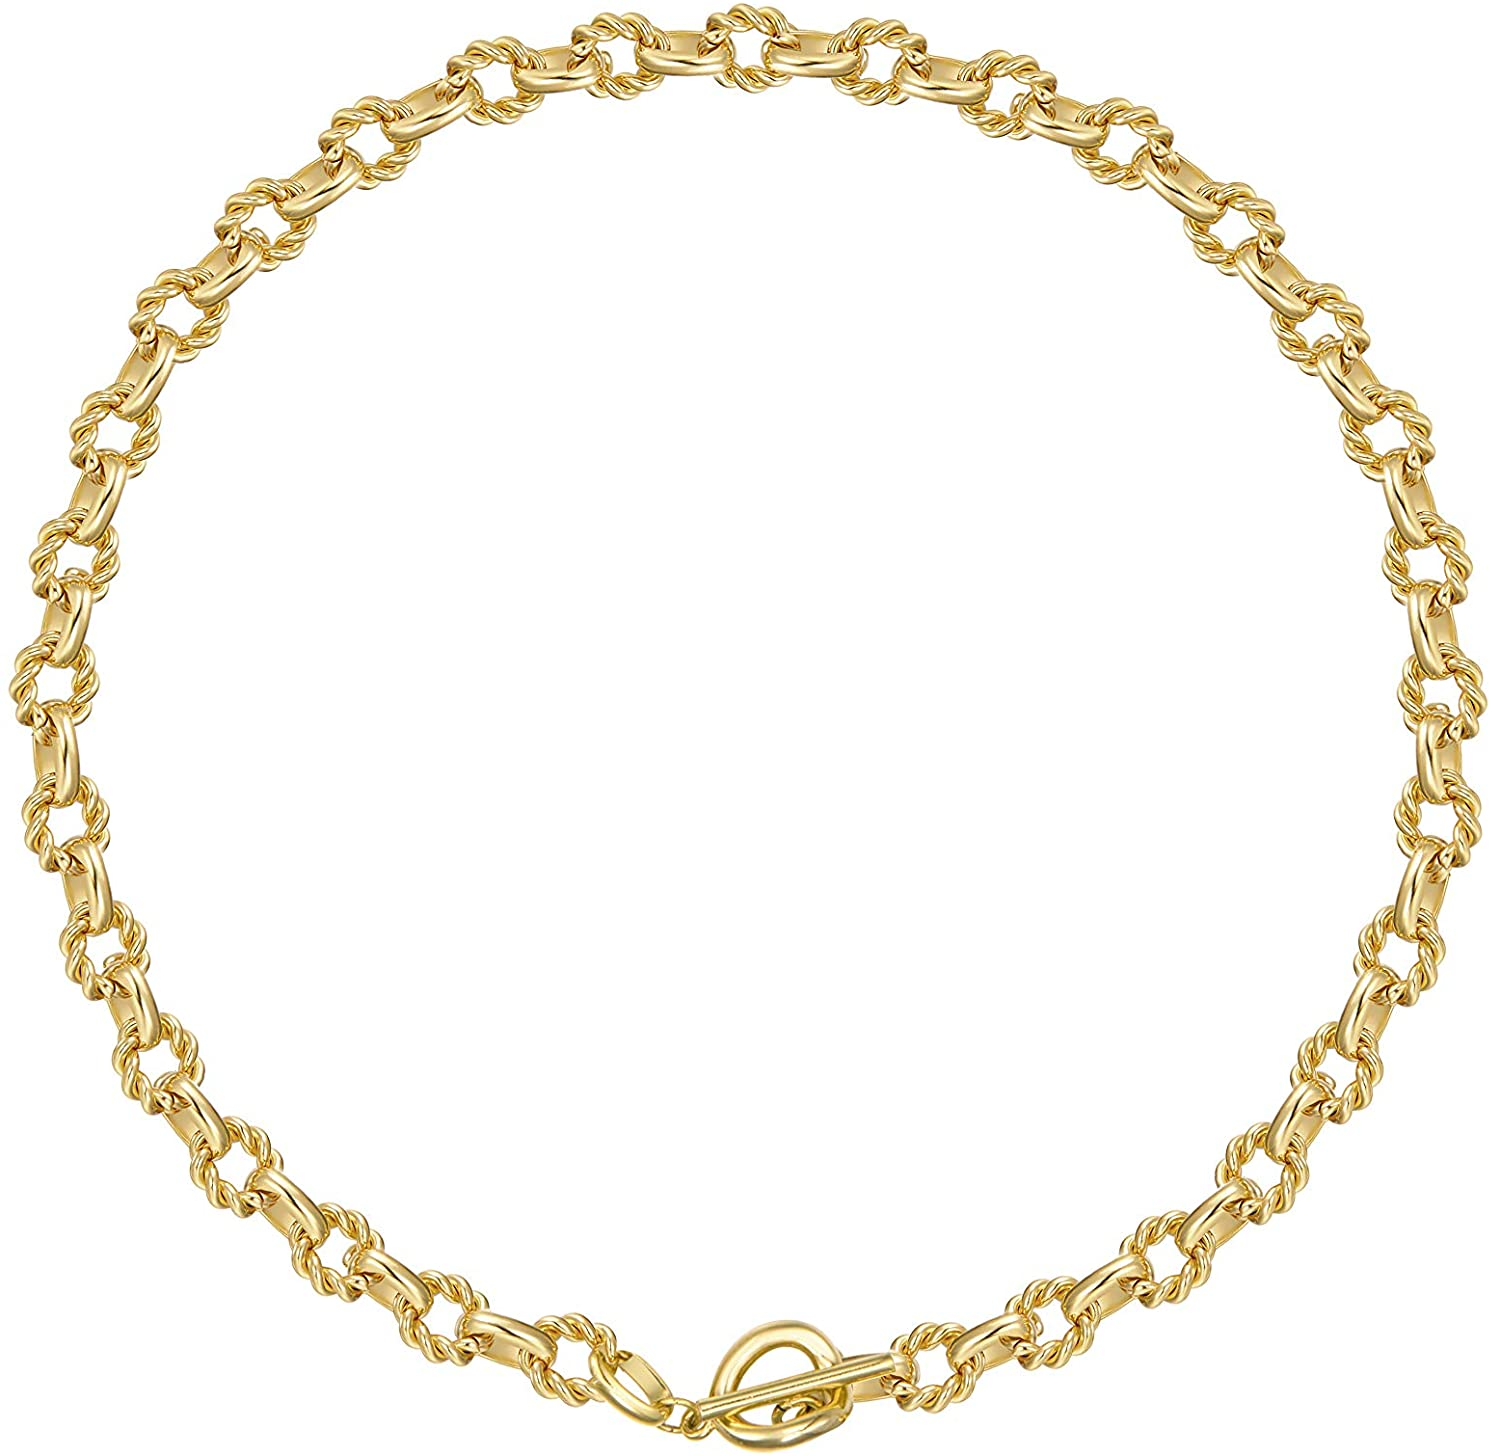 Statement 14k Gold Plated 4mm Thick Oval Chain Link Choker Collar Necklaces Chunky Gold Jewelry for Women